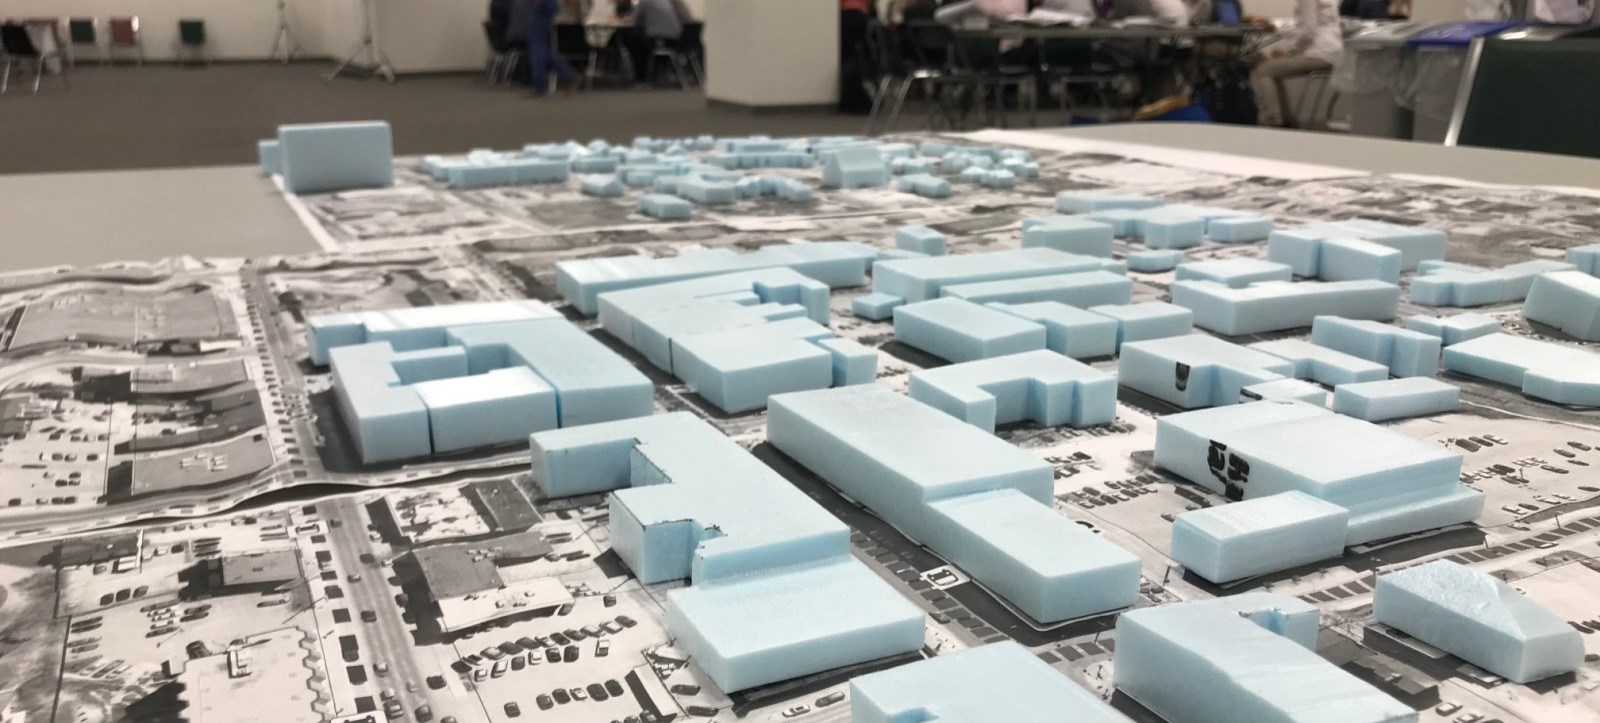 Official Plan design charrette model city